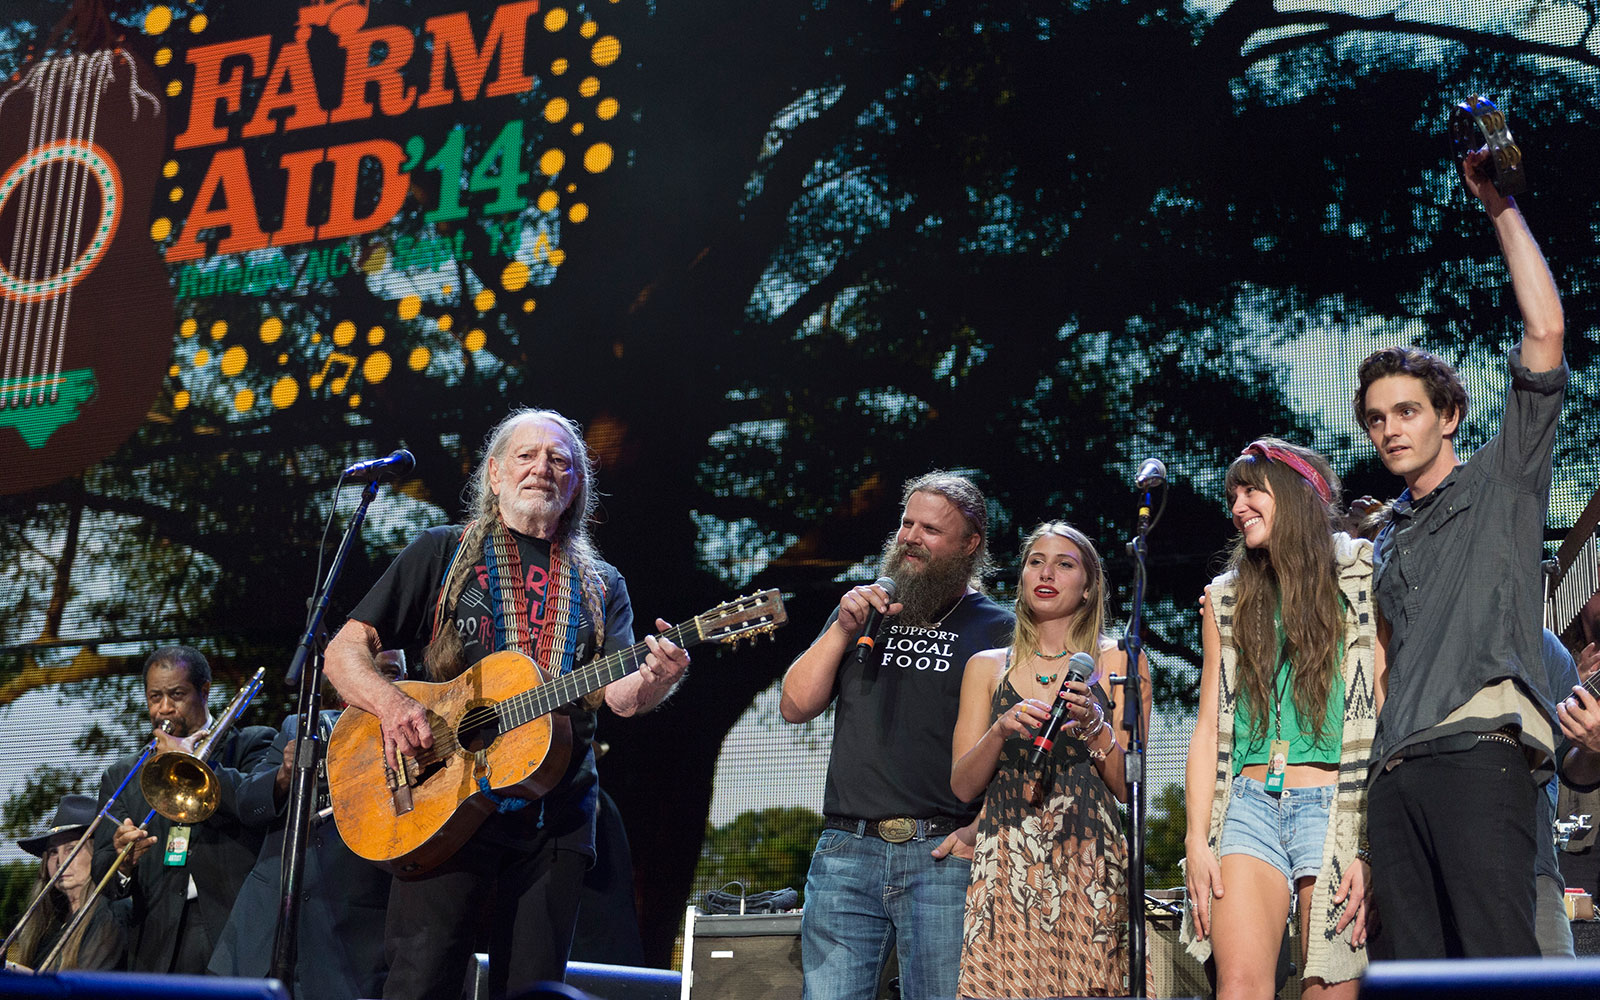 For its 30th Birthday, Farm Aid Presents Founders Willie Nelson, Neil Young, and John Mellencamp